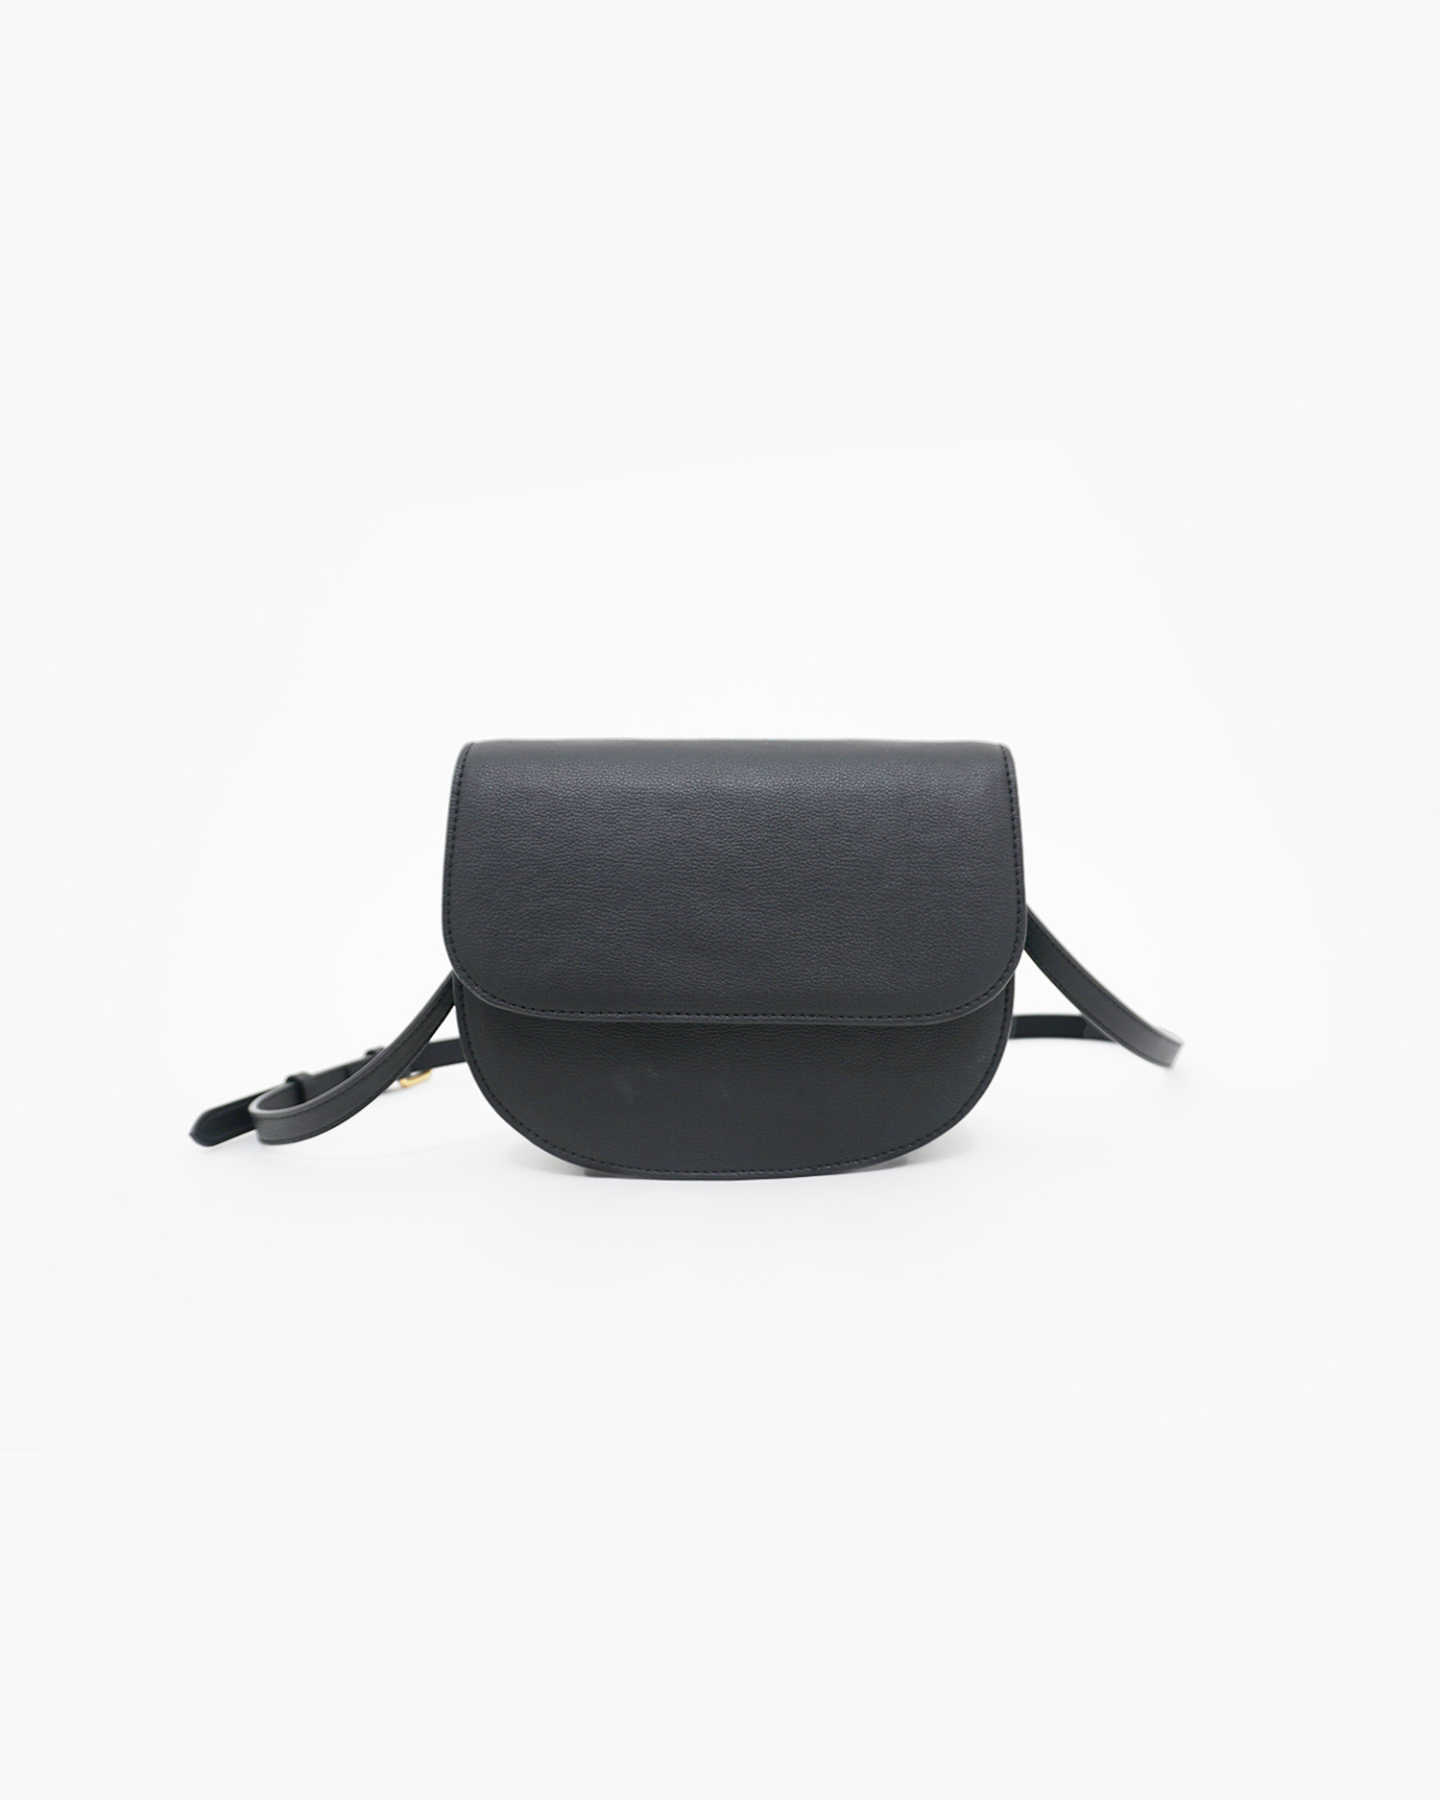 Vegan Saddle Bag - Black - 8